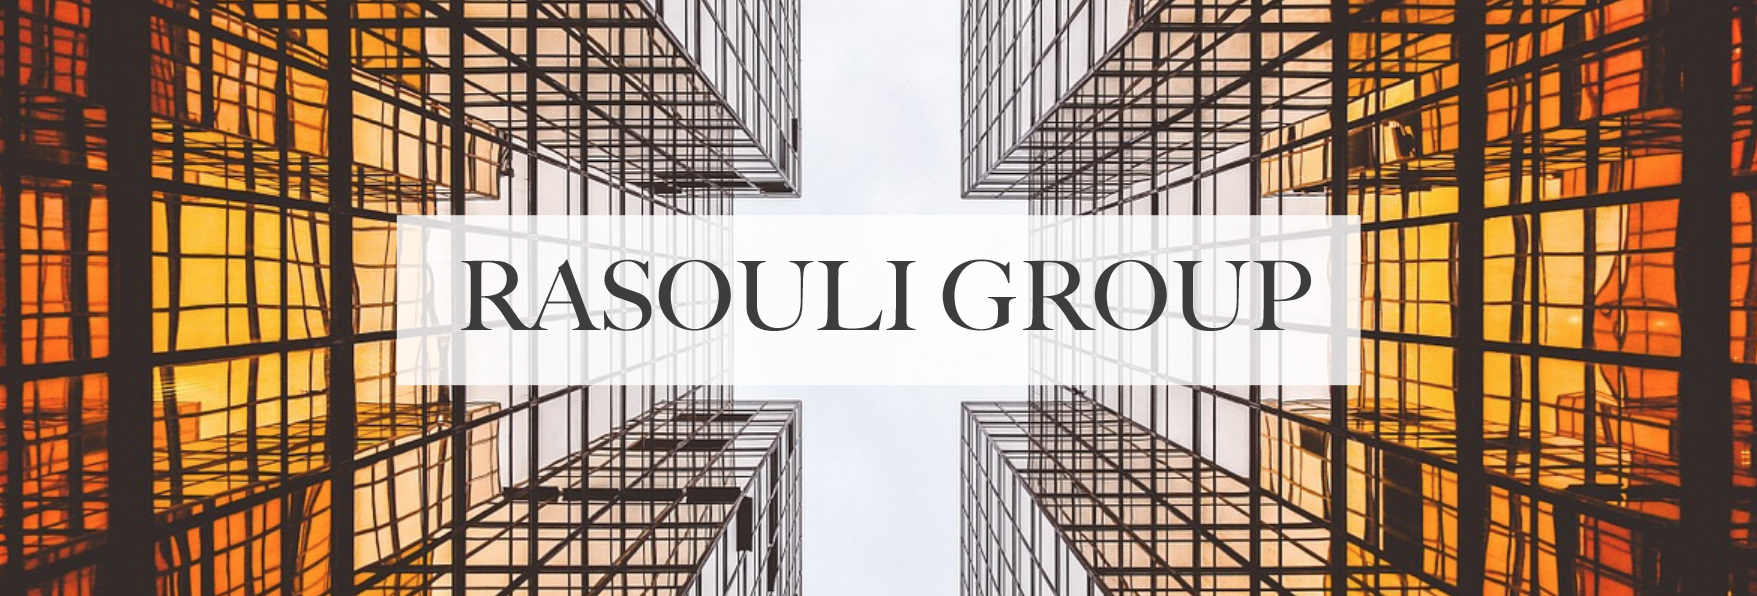 Rasouli Group